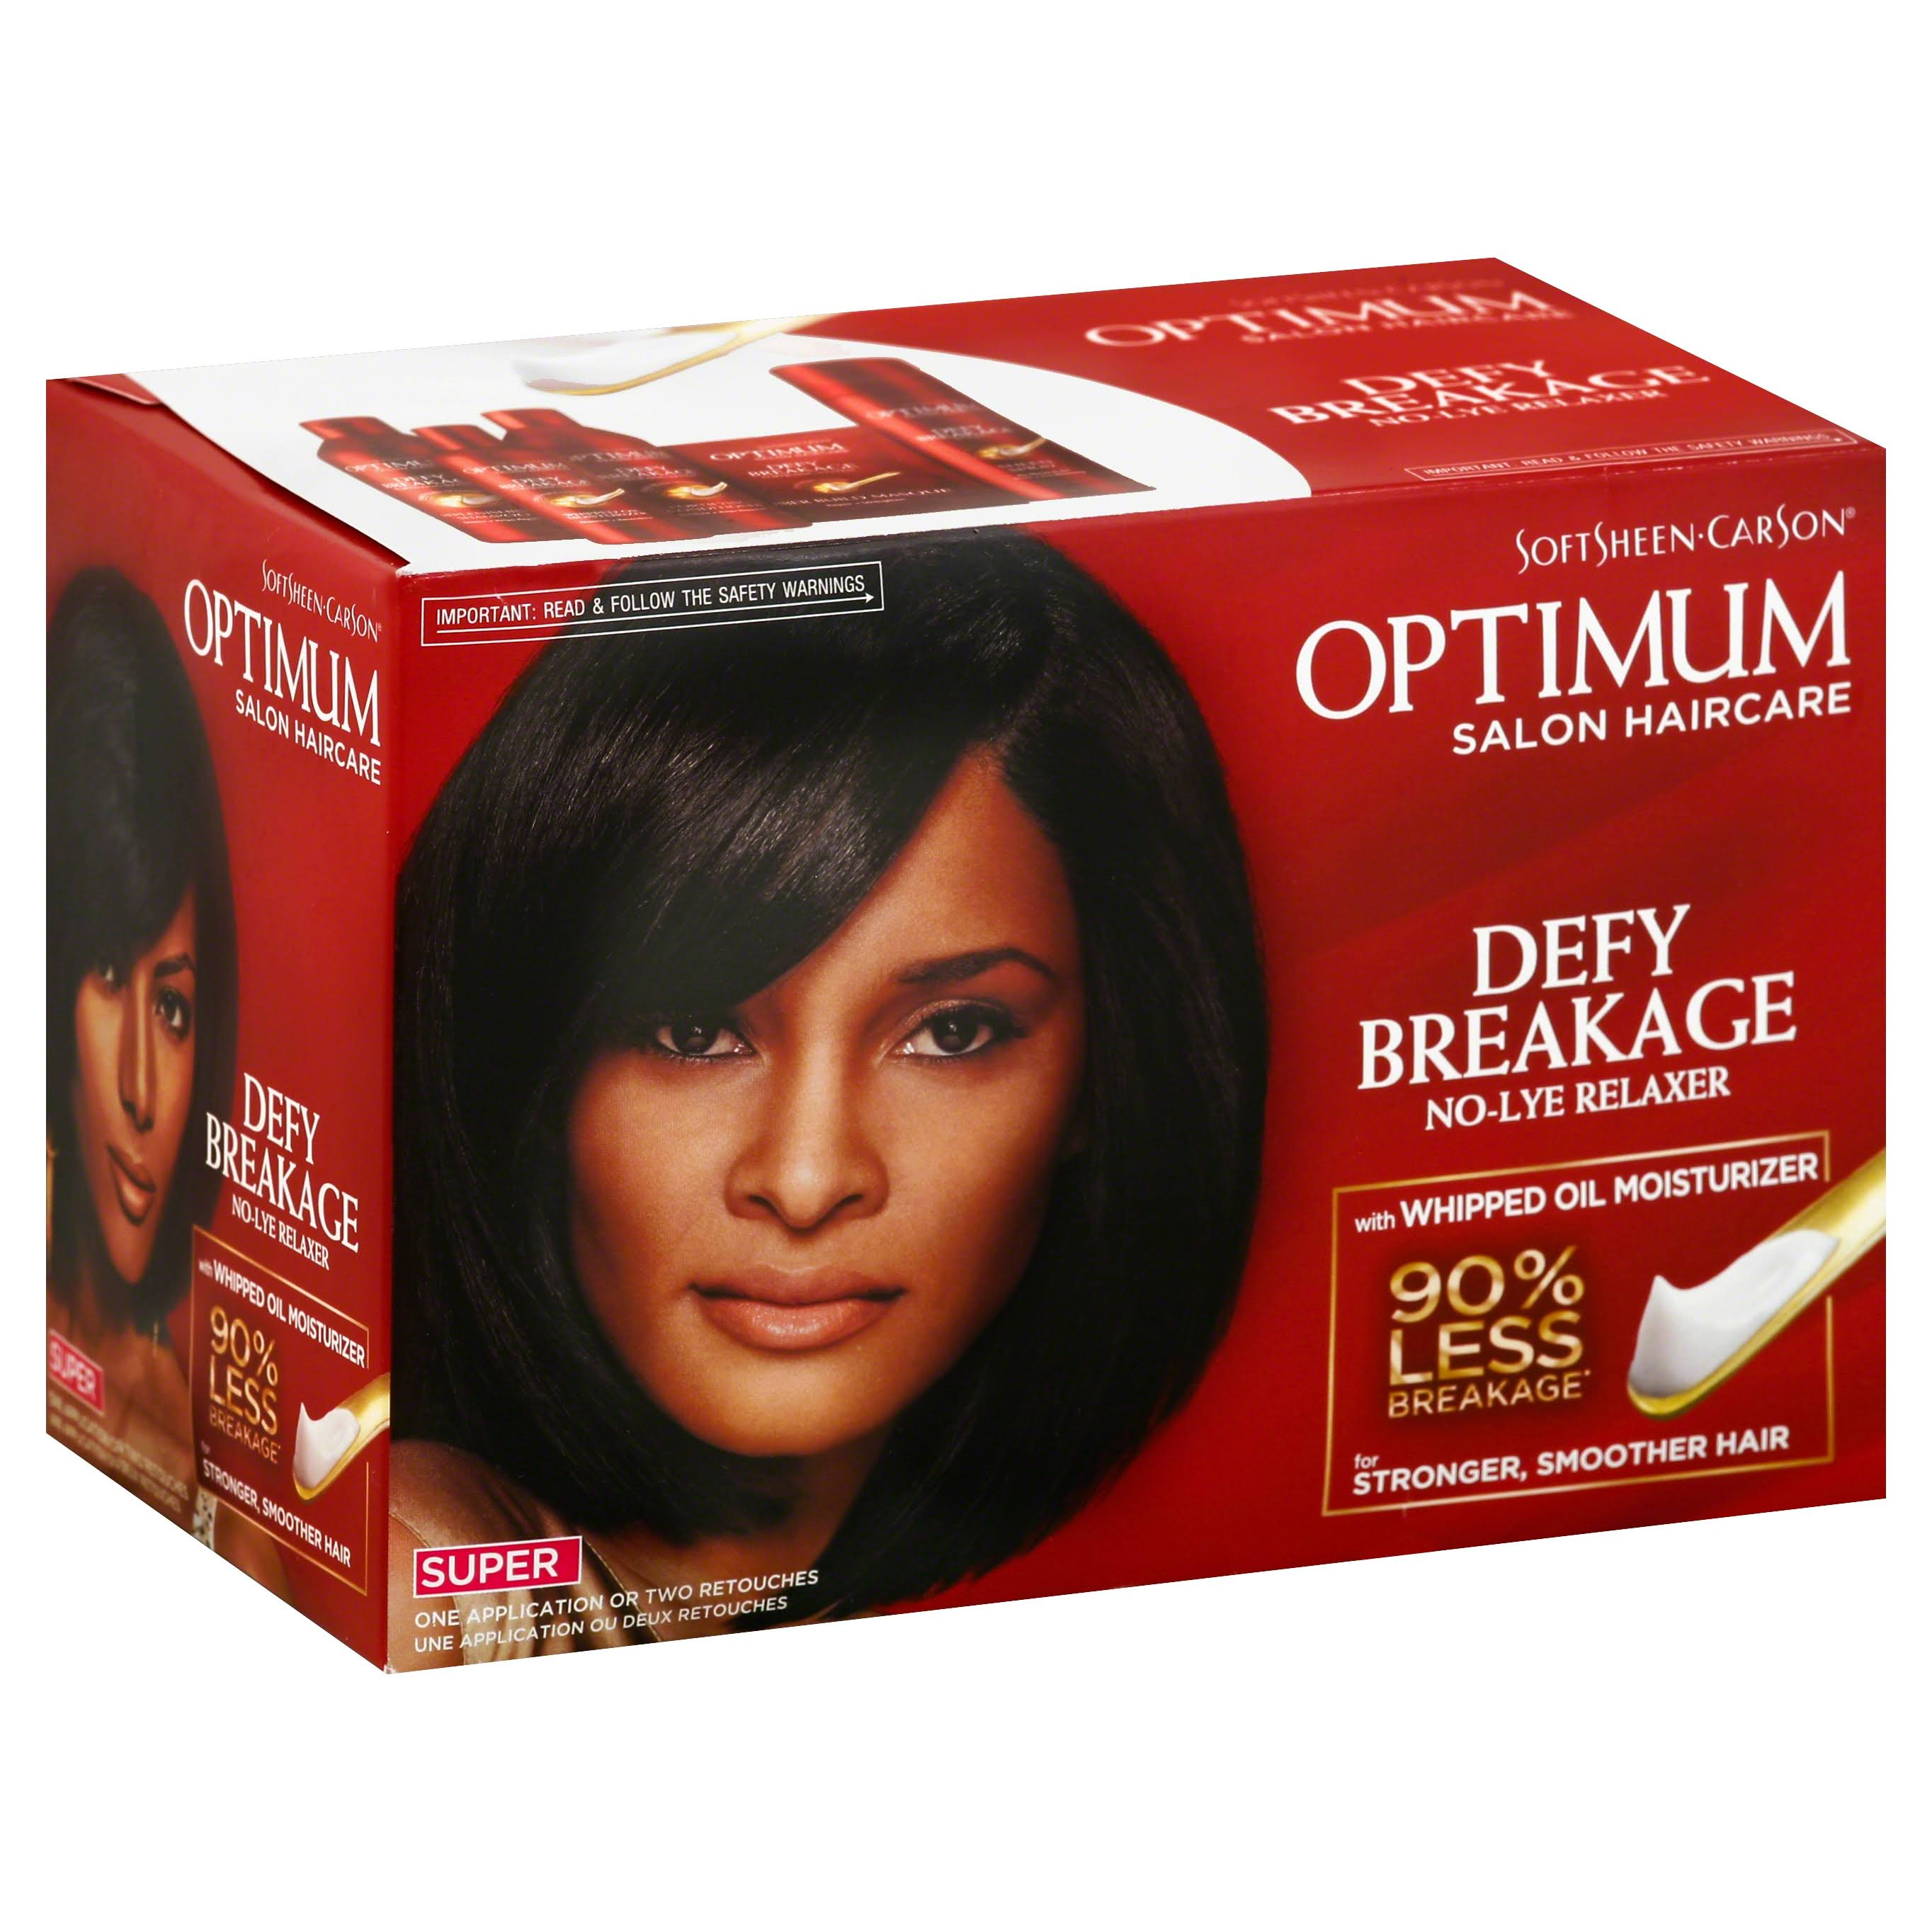 Optimum Salon Haircare Relaxer, No-Lye, Defy Breakage, Super